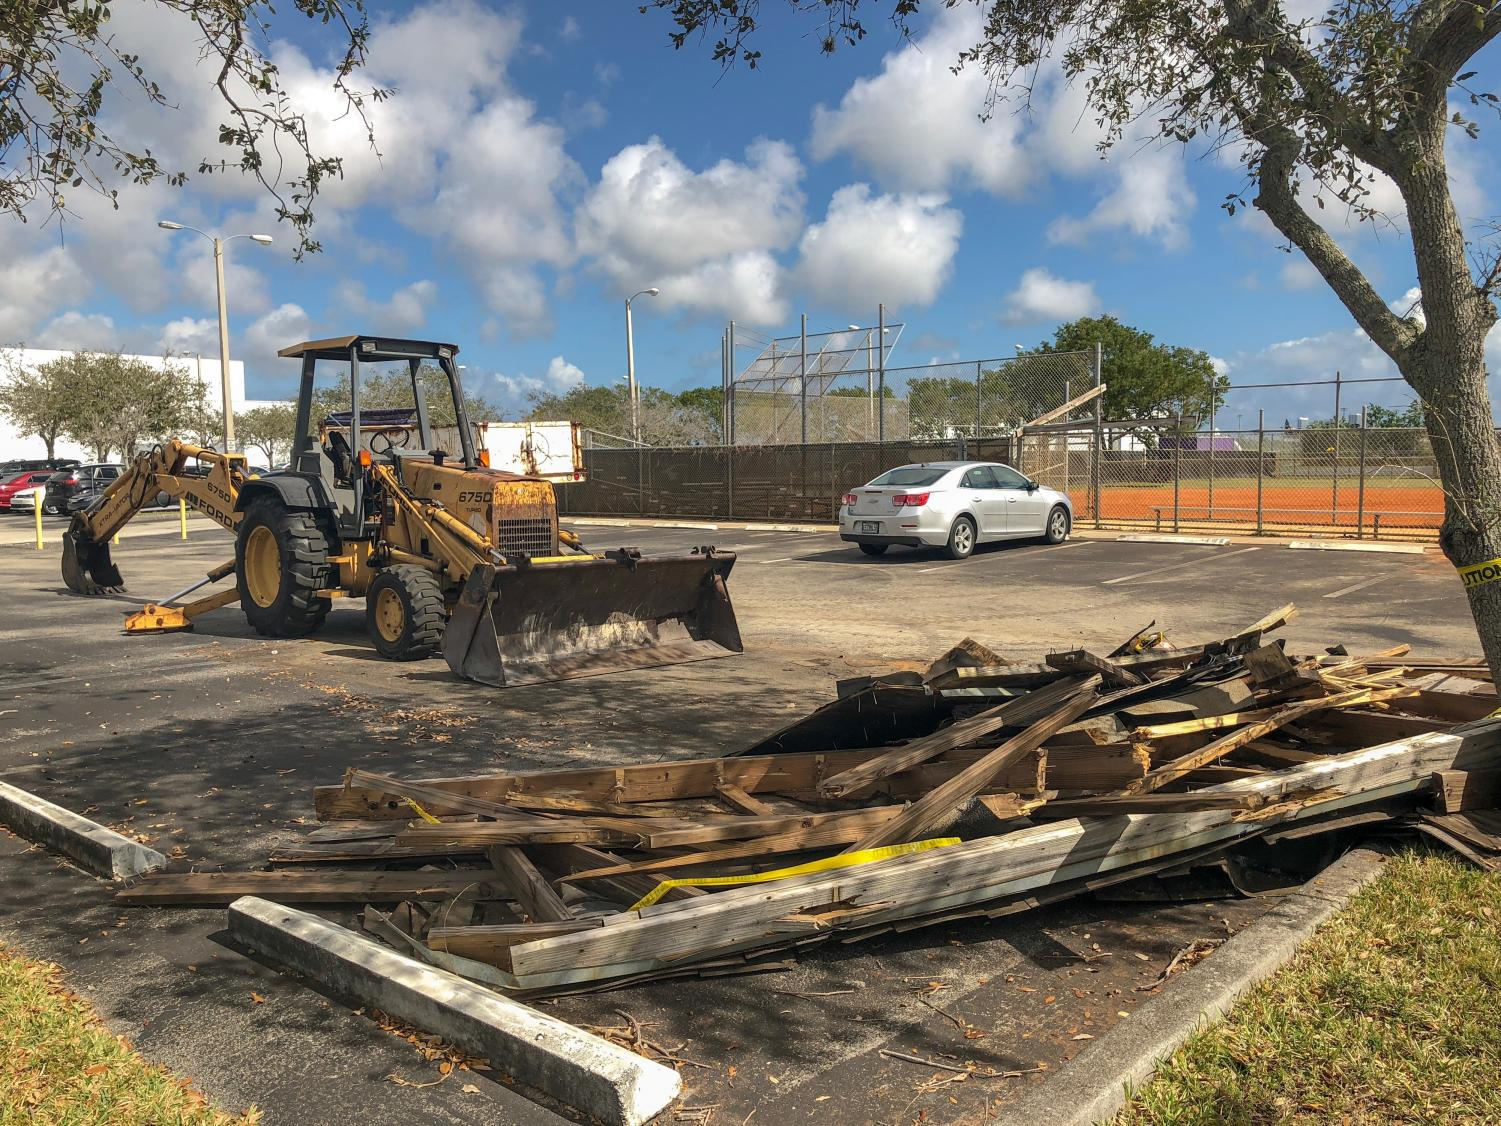 An MDCPS Maintenance and Operations bulldozer clears the student parking lot of the dugout's roof wreckage. The debris had blown away during Hurricane Irma in Sept. 2017.